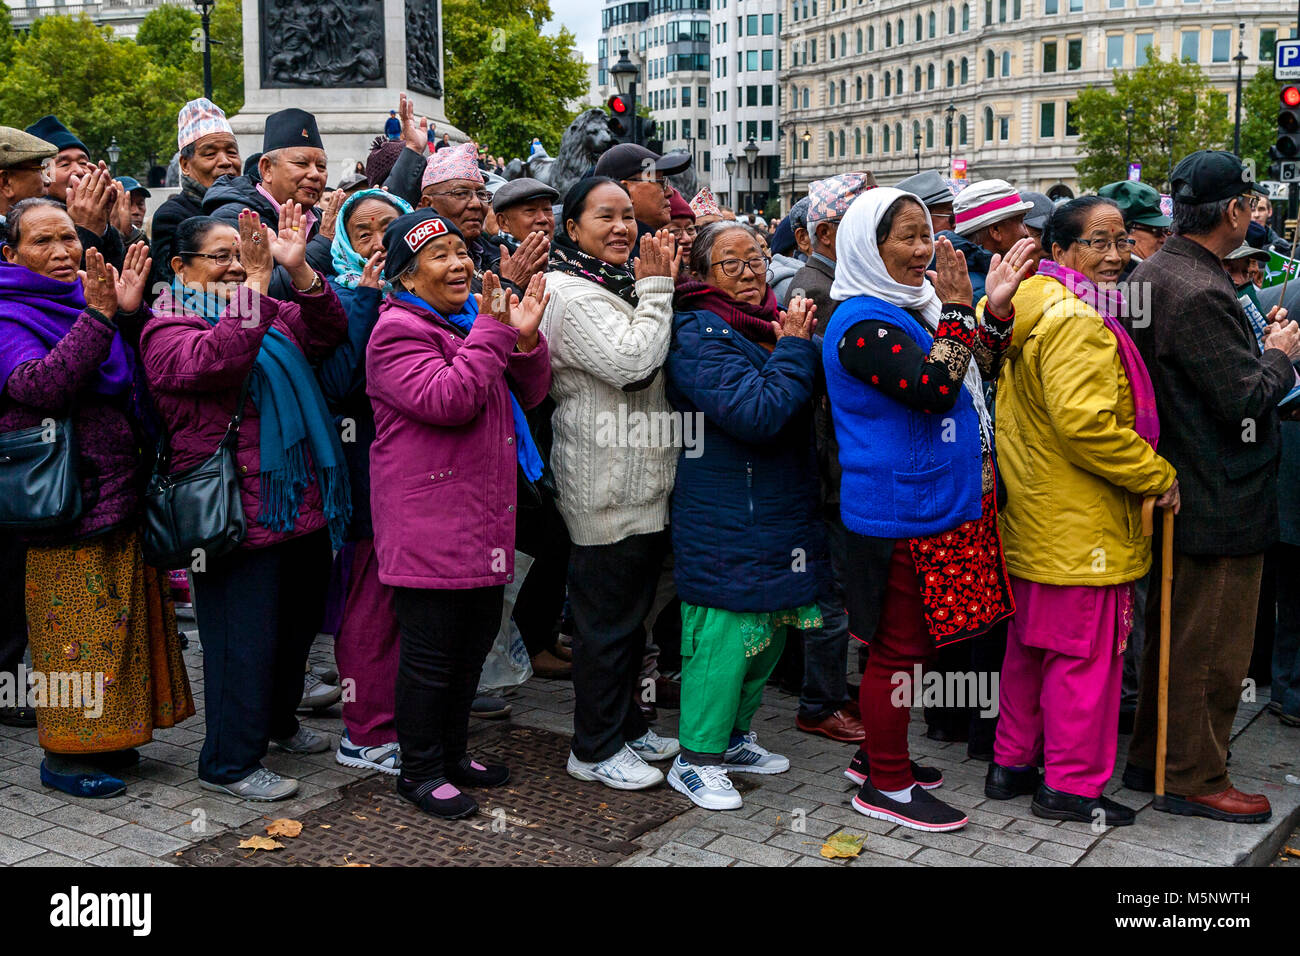 Ghurka women cheer football fans from across the Uk who are marching against extremism under the banner of the FLA - Stock Image